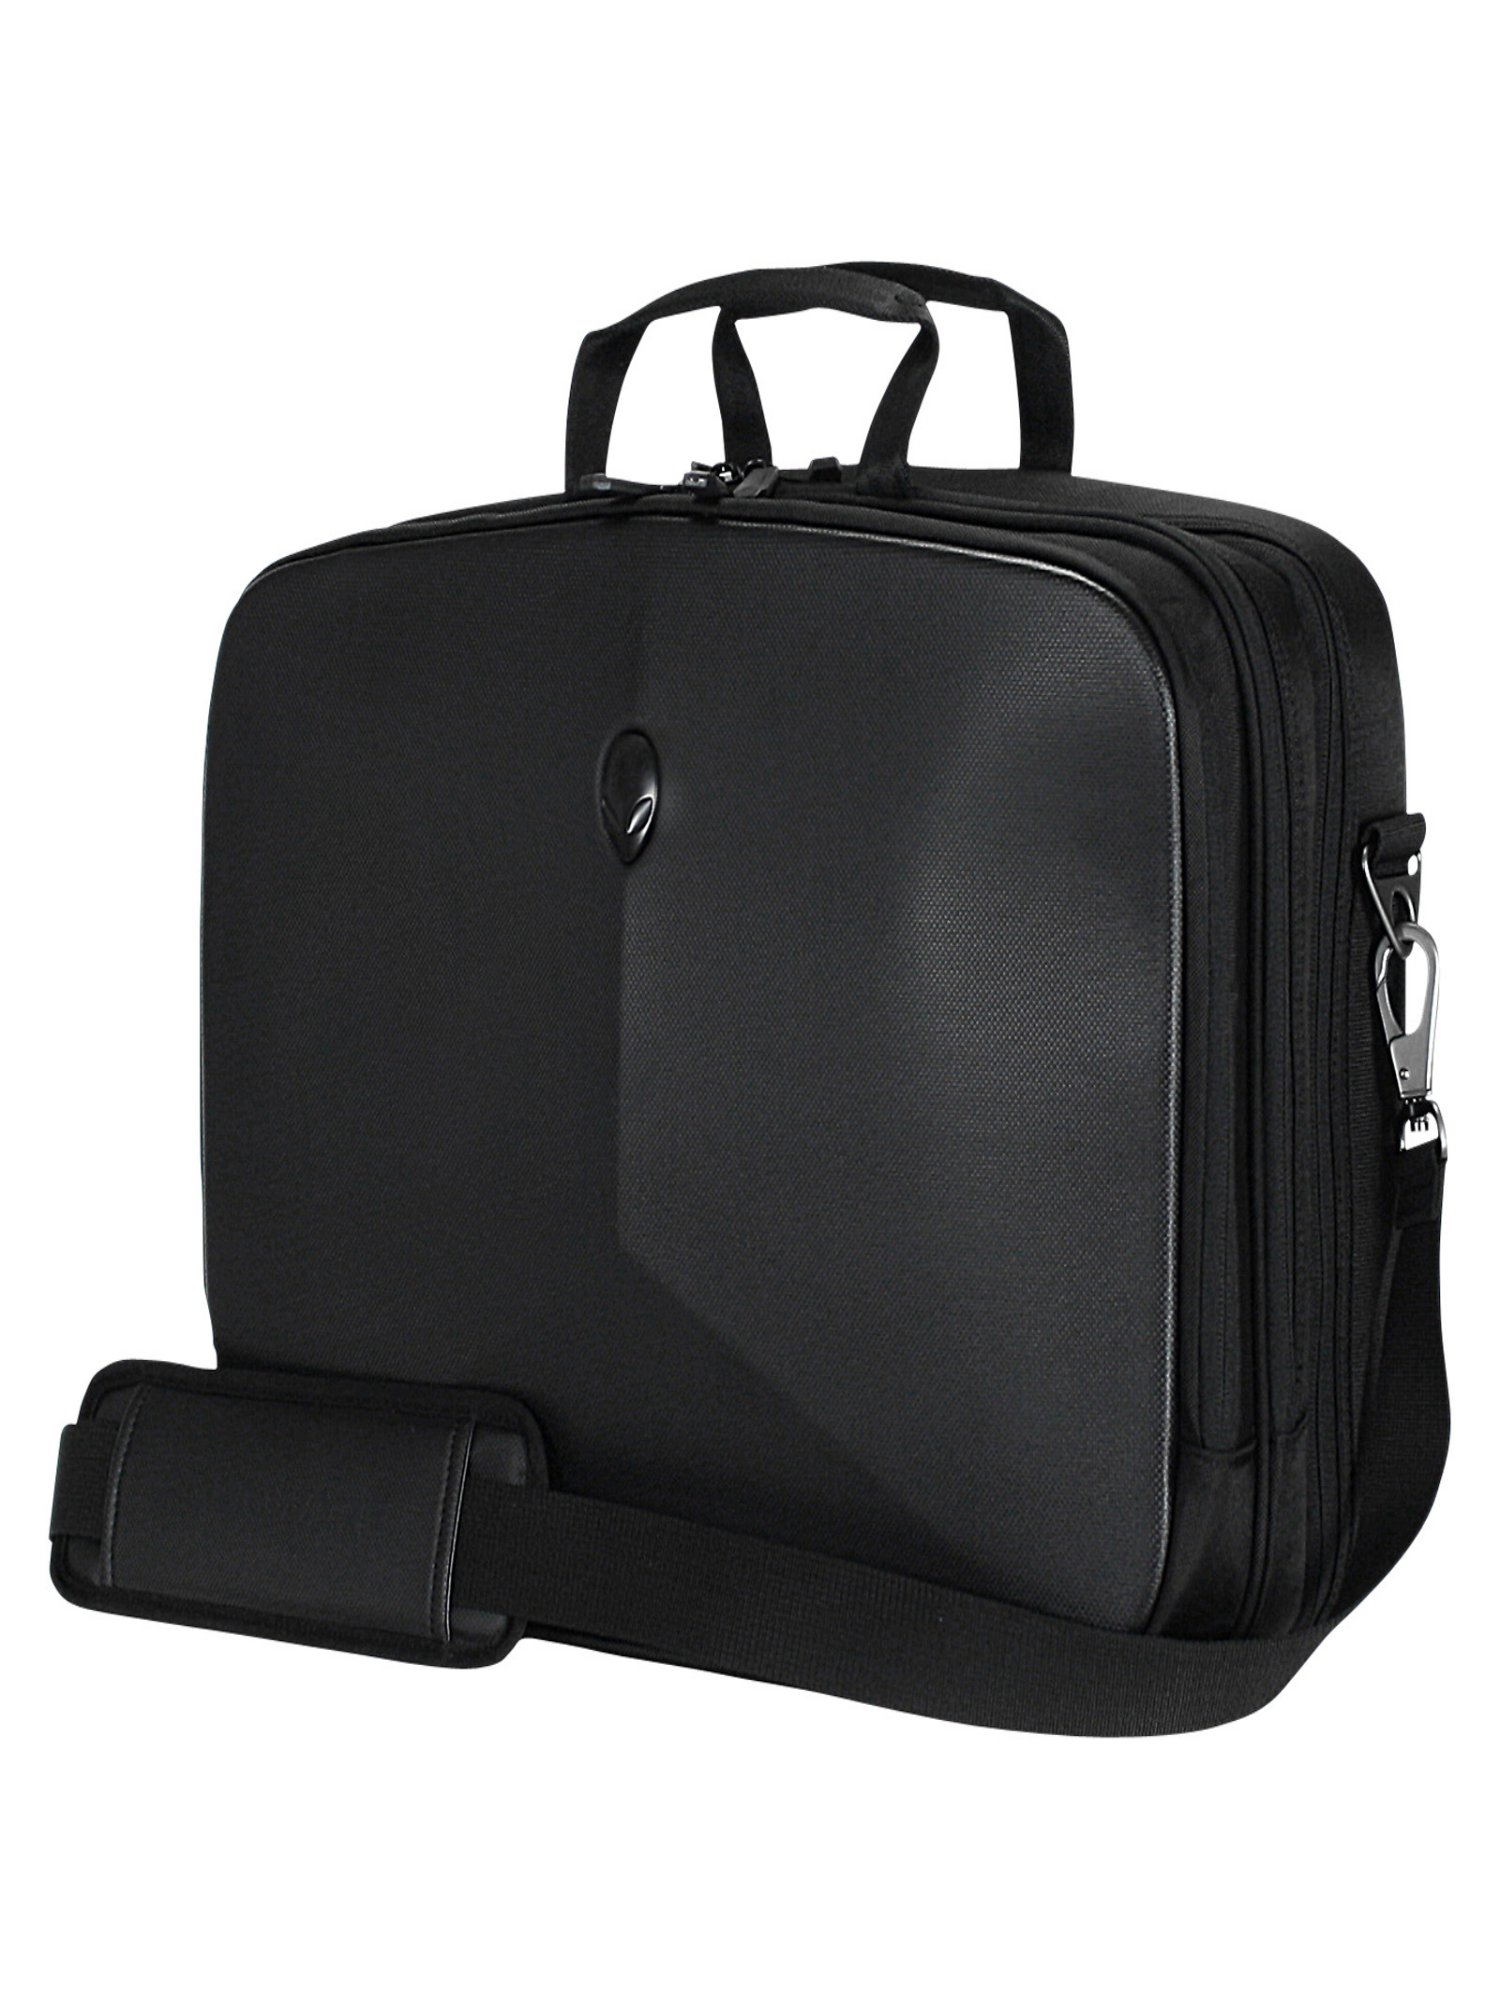 "Alienware 17"" Vindicator Briefcase"